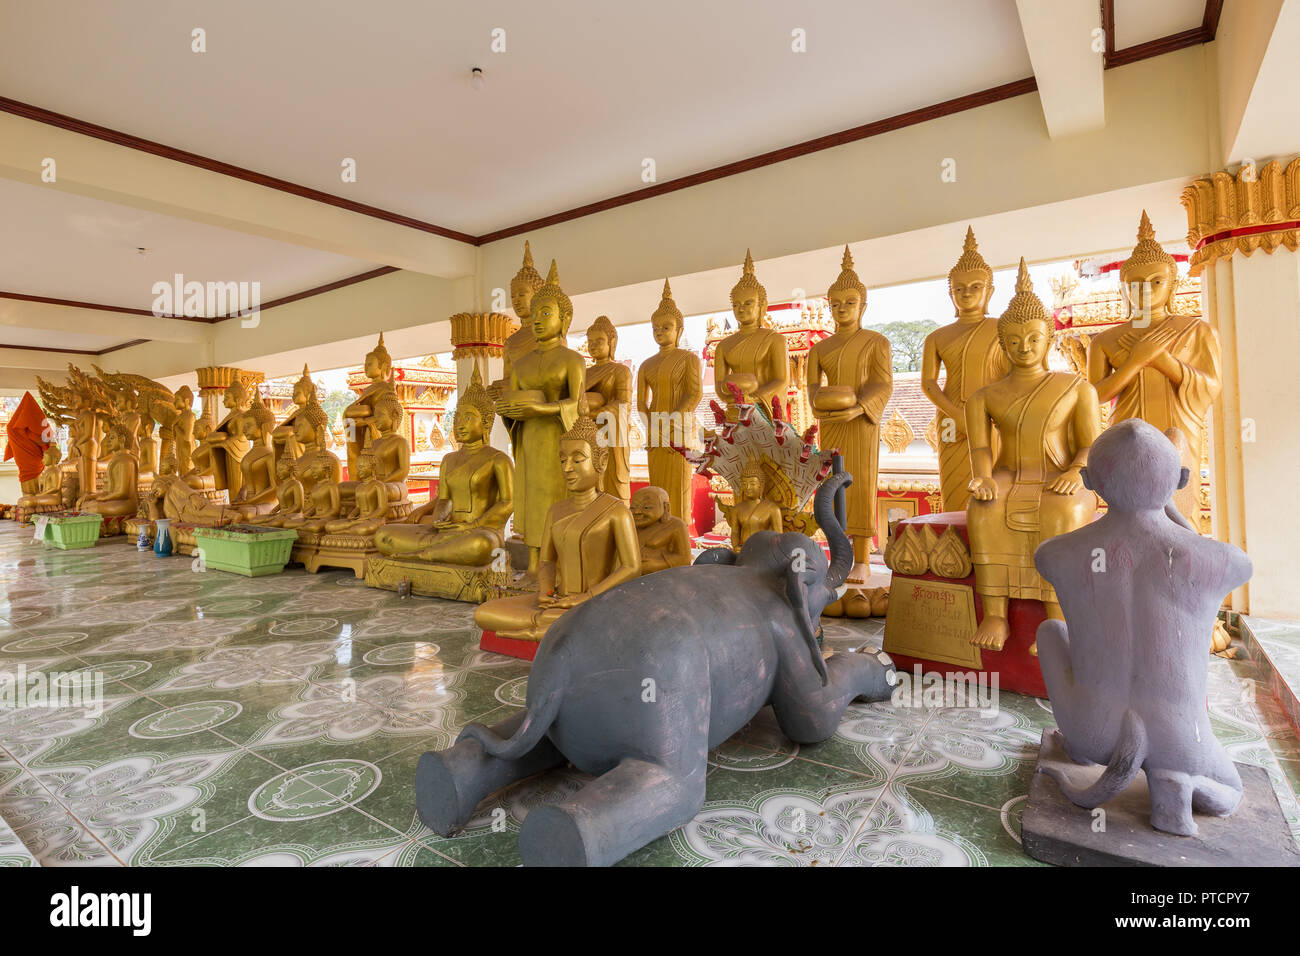 Two animal sculptures and many gilded Buddha statues at the Wat That Luang Tai Temple in Vientiane, Laos. - Stock Image